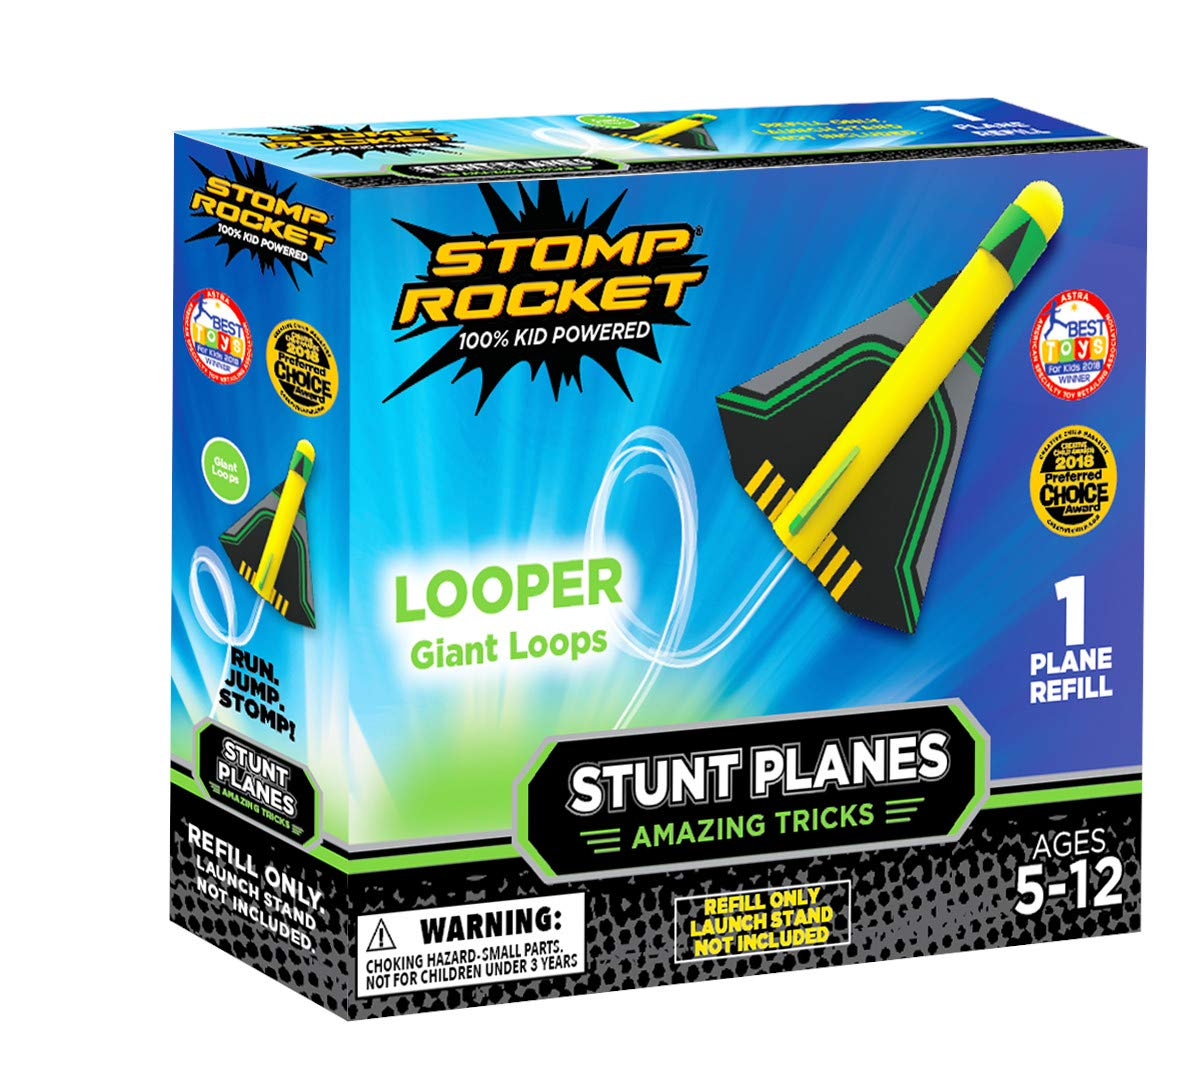 Stomp Rocket Stunt Planes Refill Pack, 1 Looper Plane, for Boys and Girls - Outdoor Rocket Gift for Ages 5 (6, 7, 8) and up